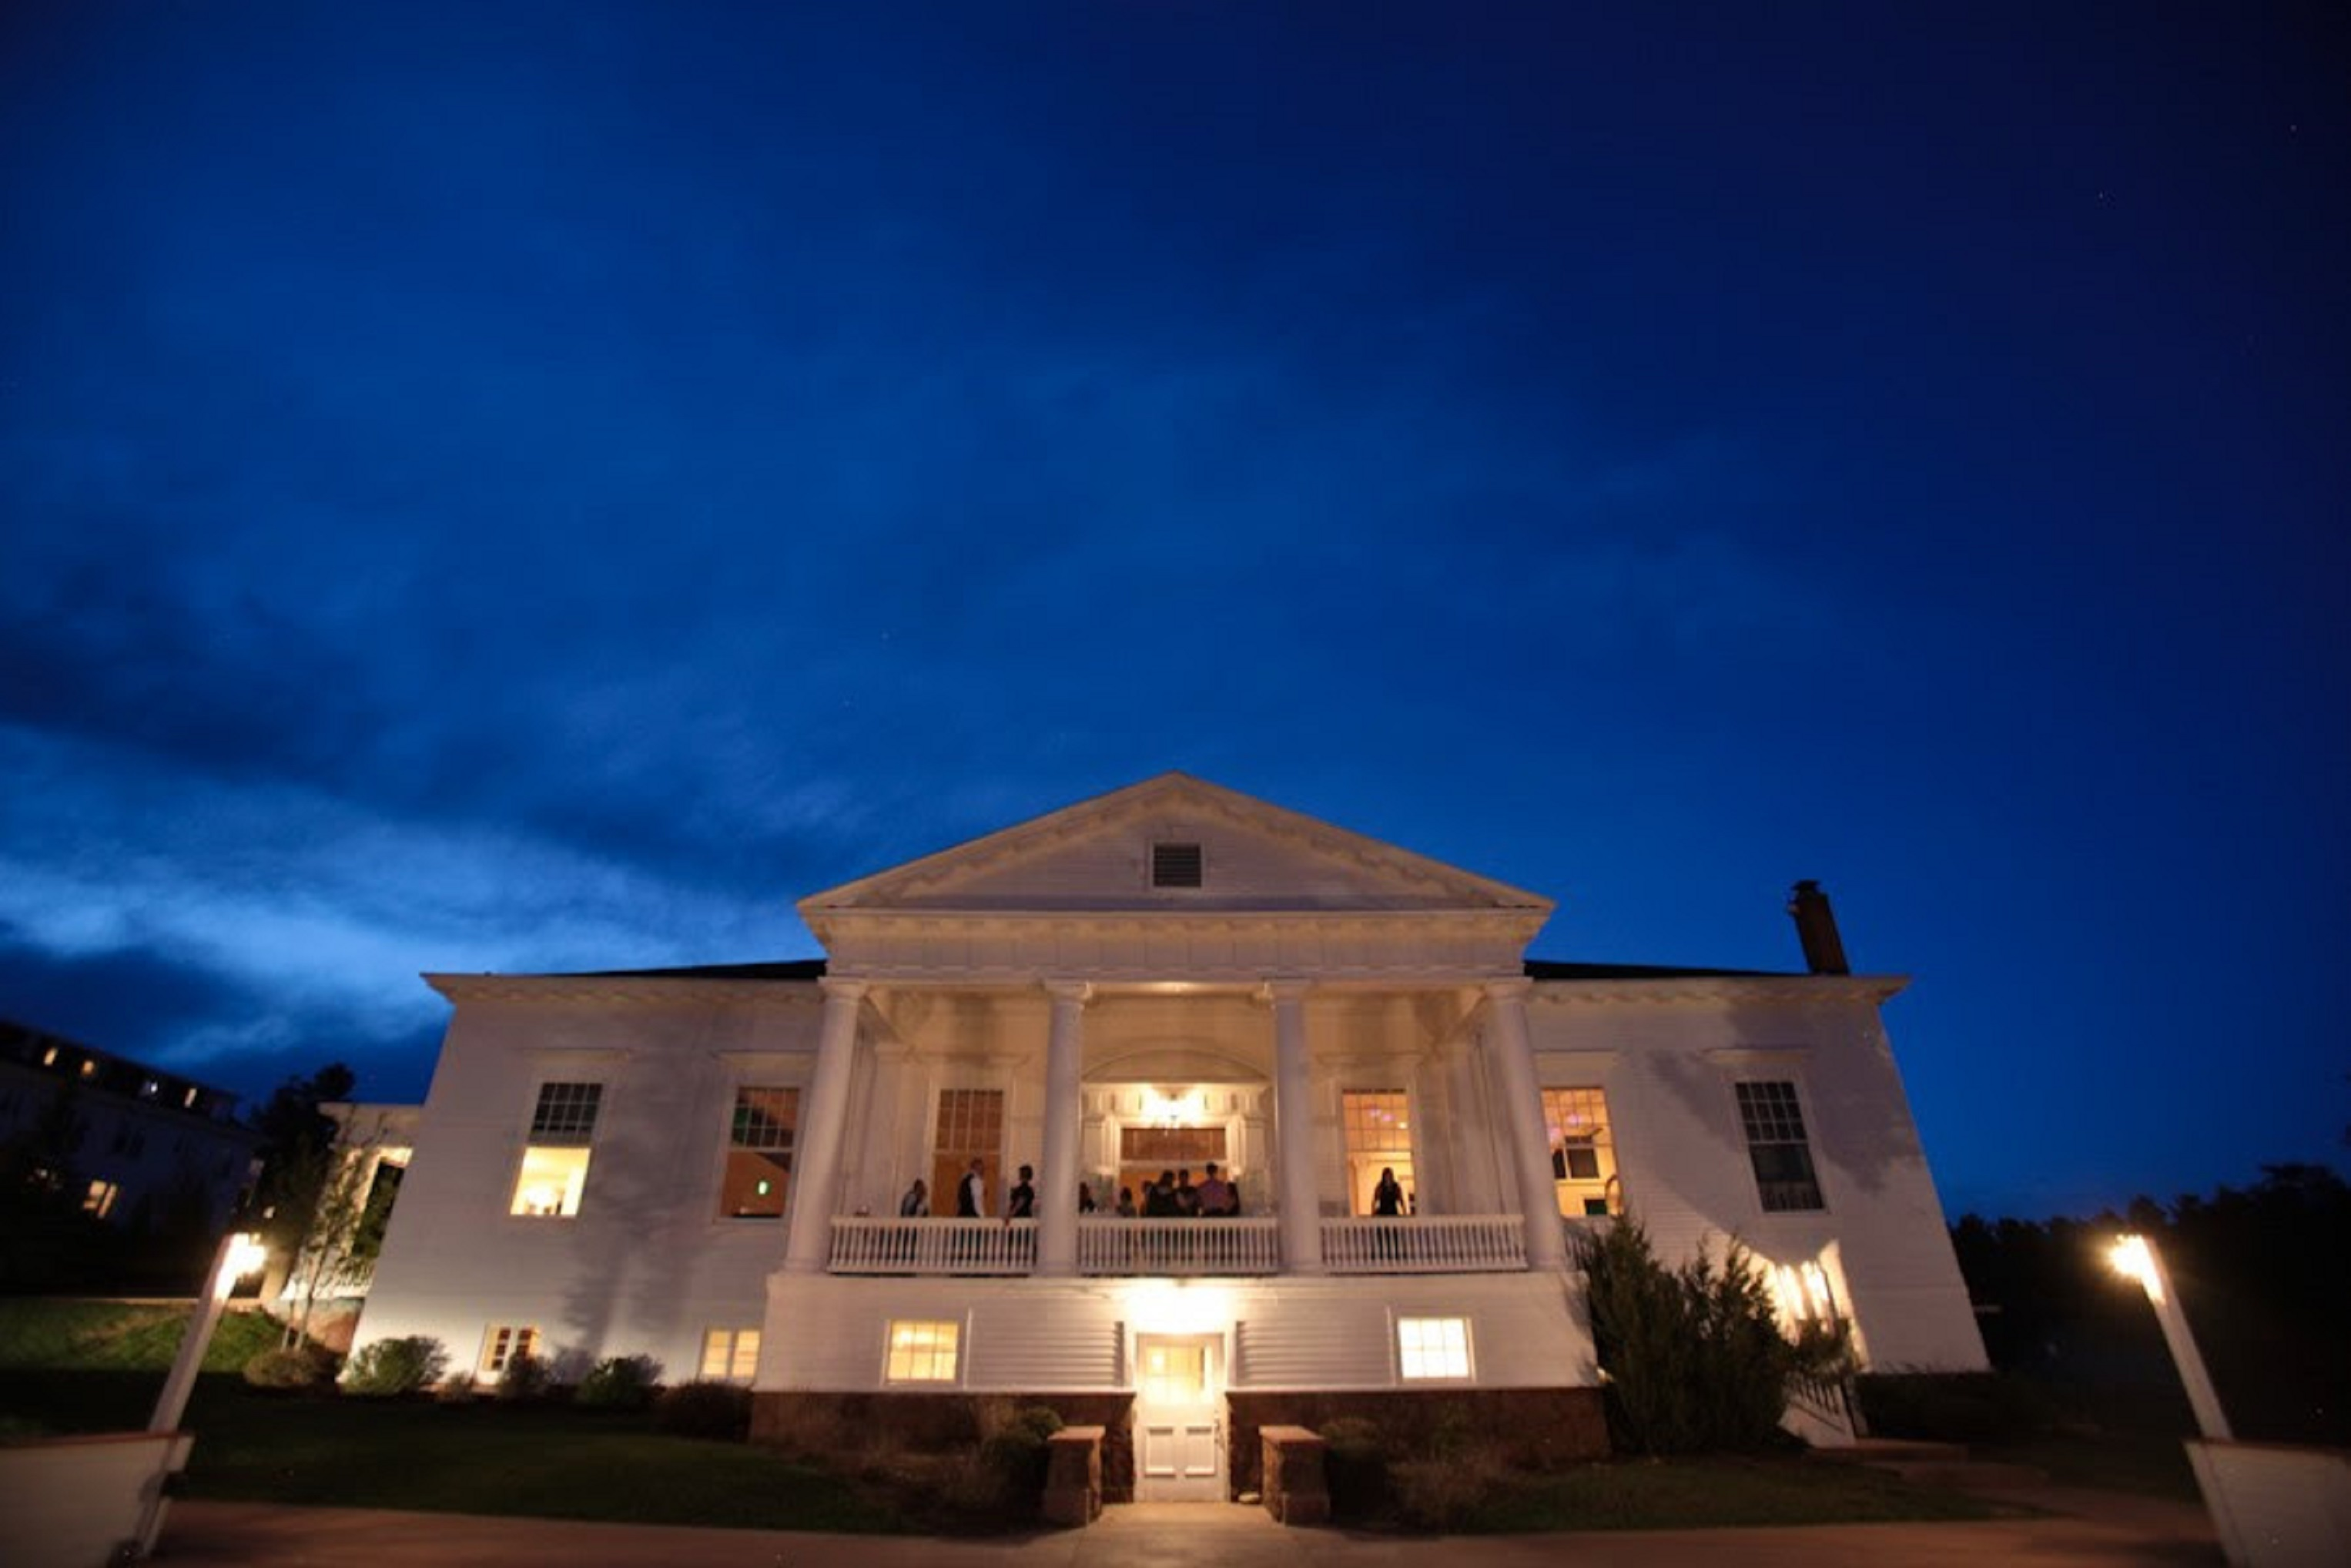 Stanley Hotel and AEG Presents Rocky Mountains Announce New Partnership